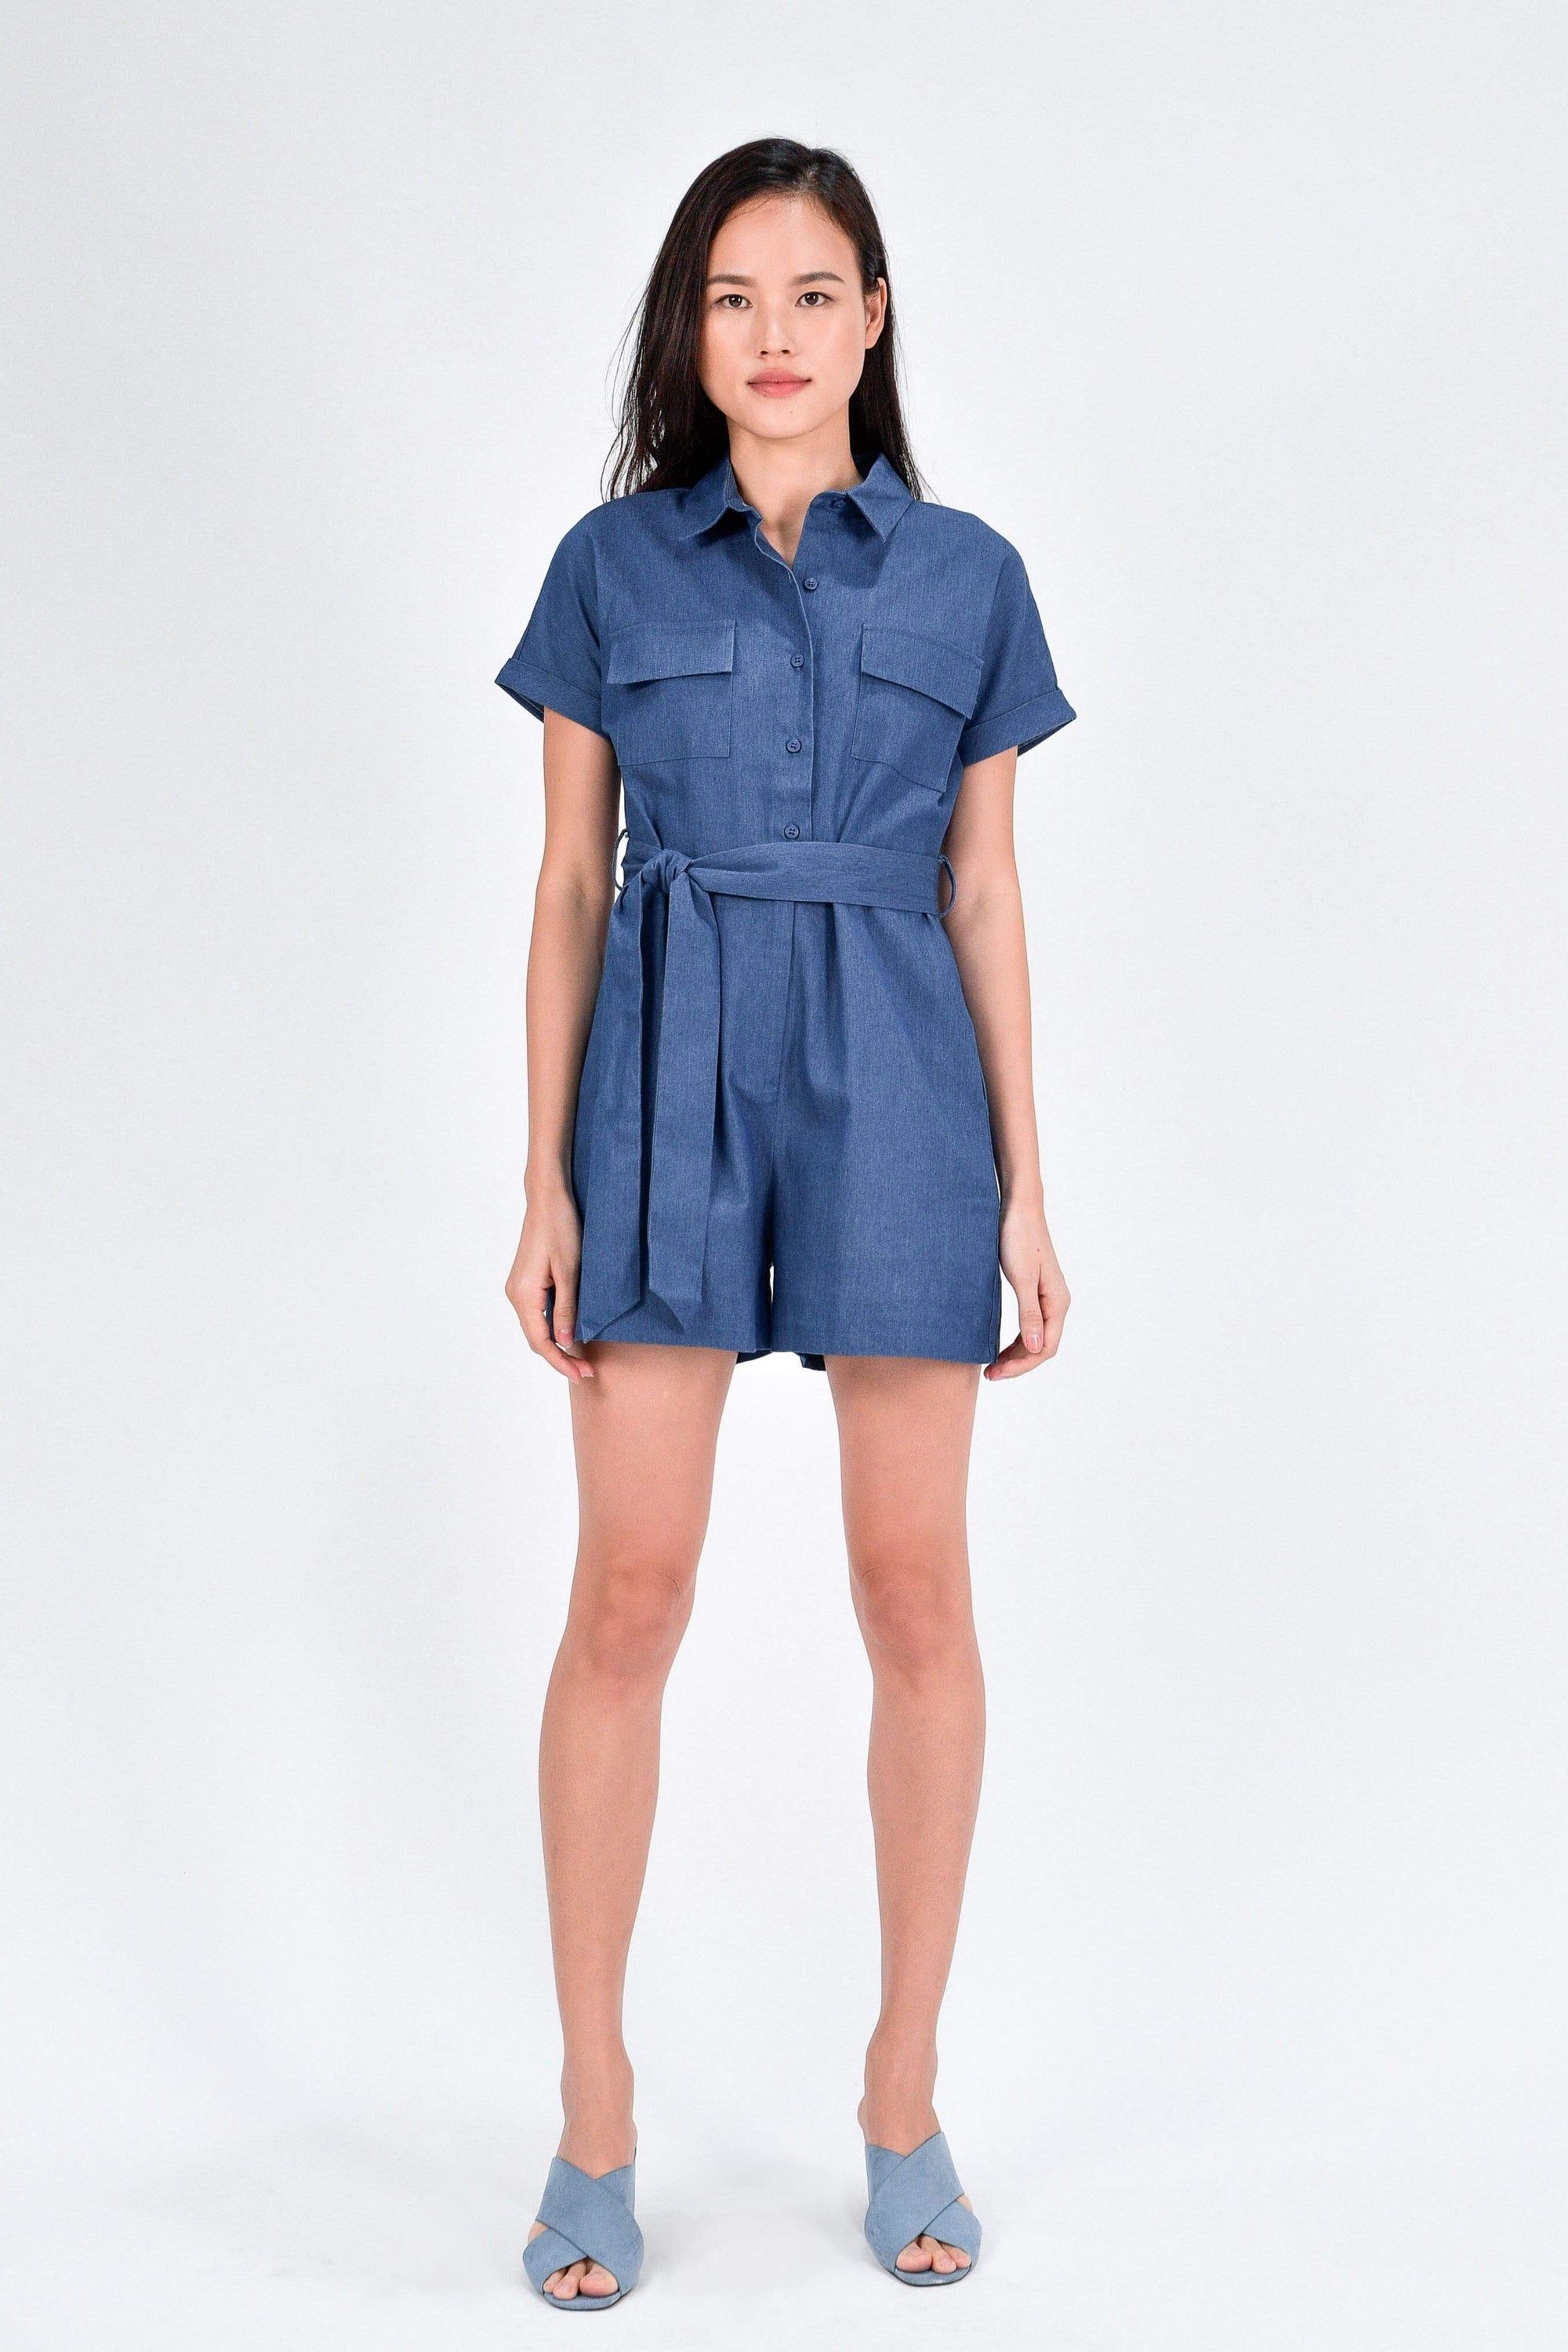 SKYA DENIM UTILITY ROMPER IN MID WASH